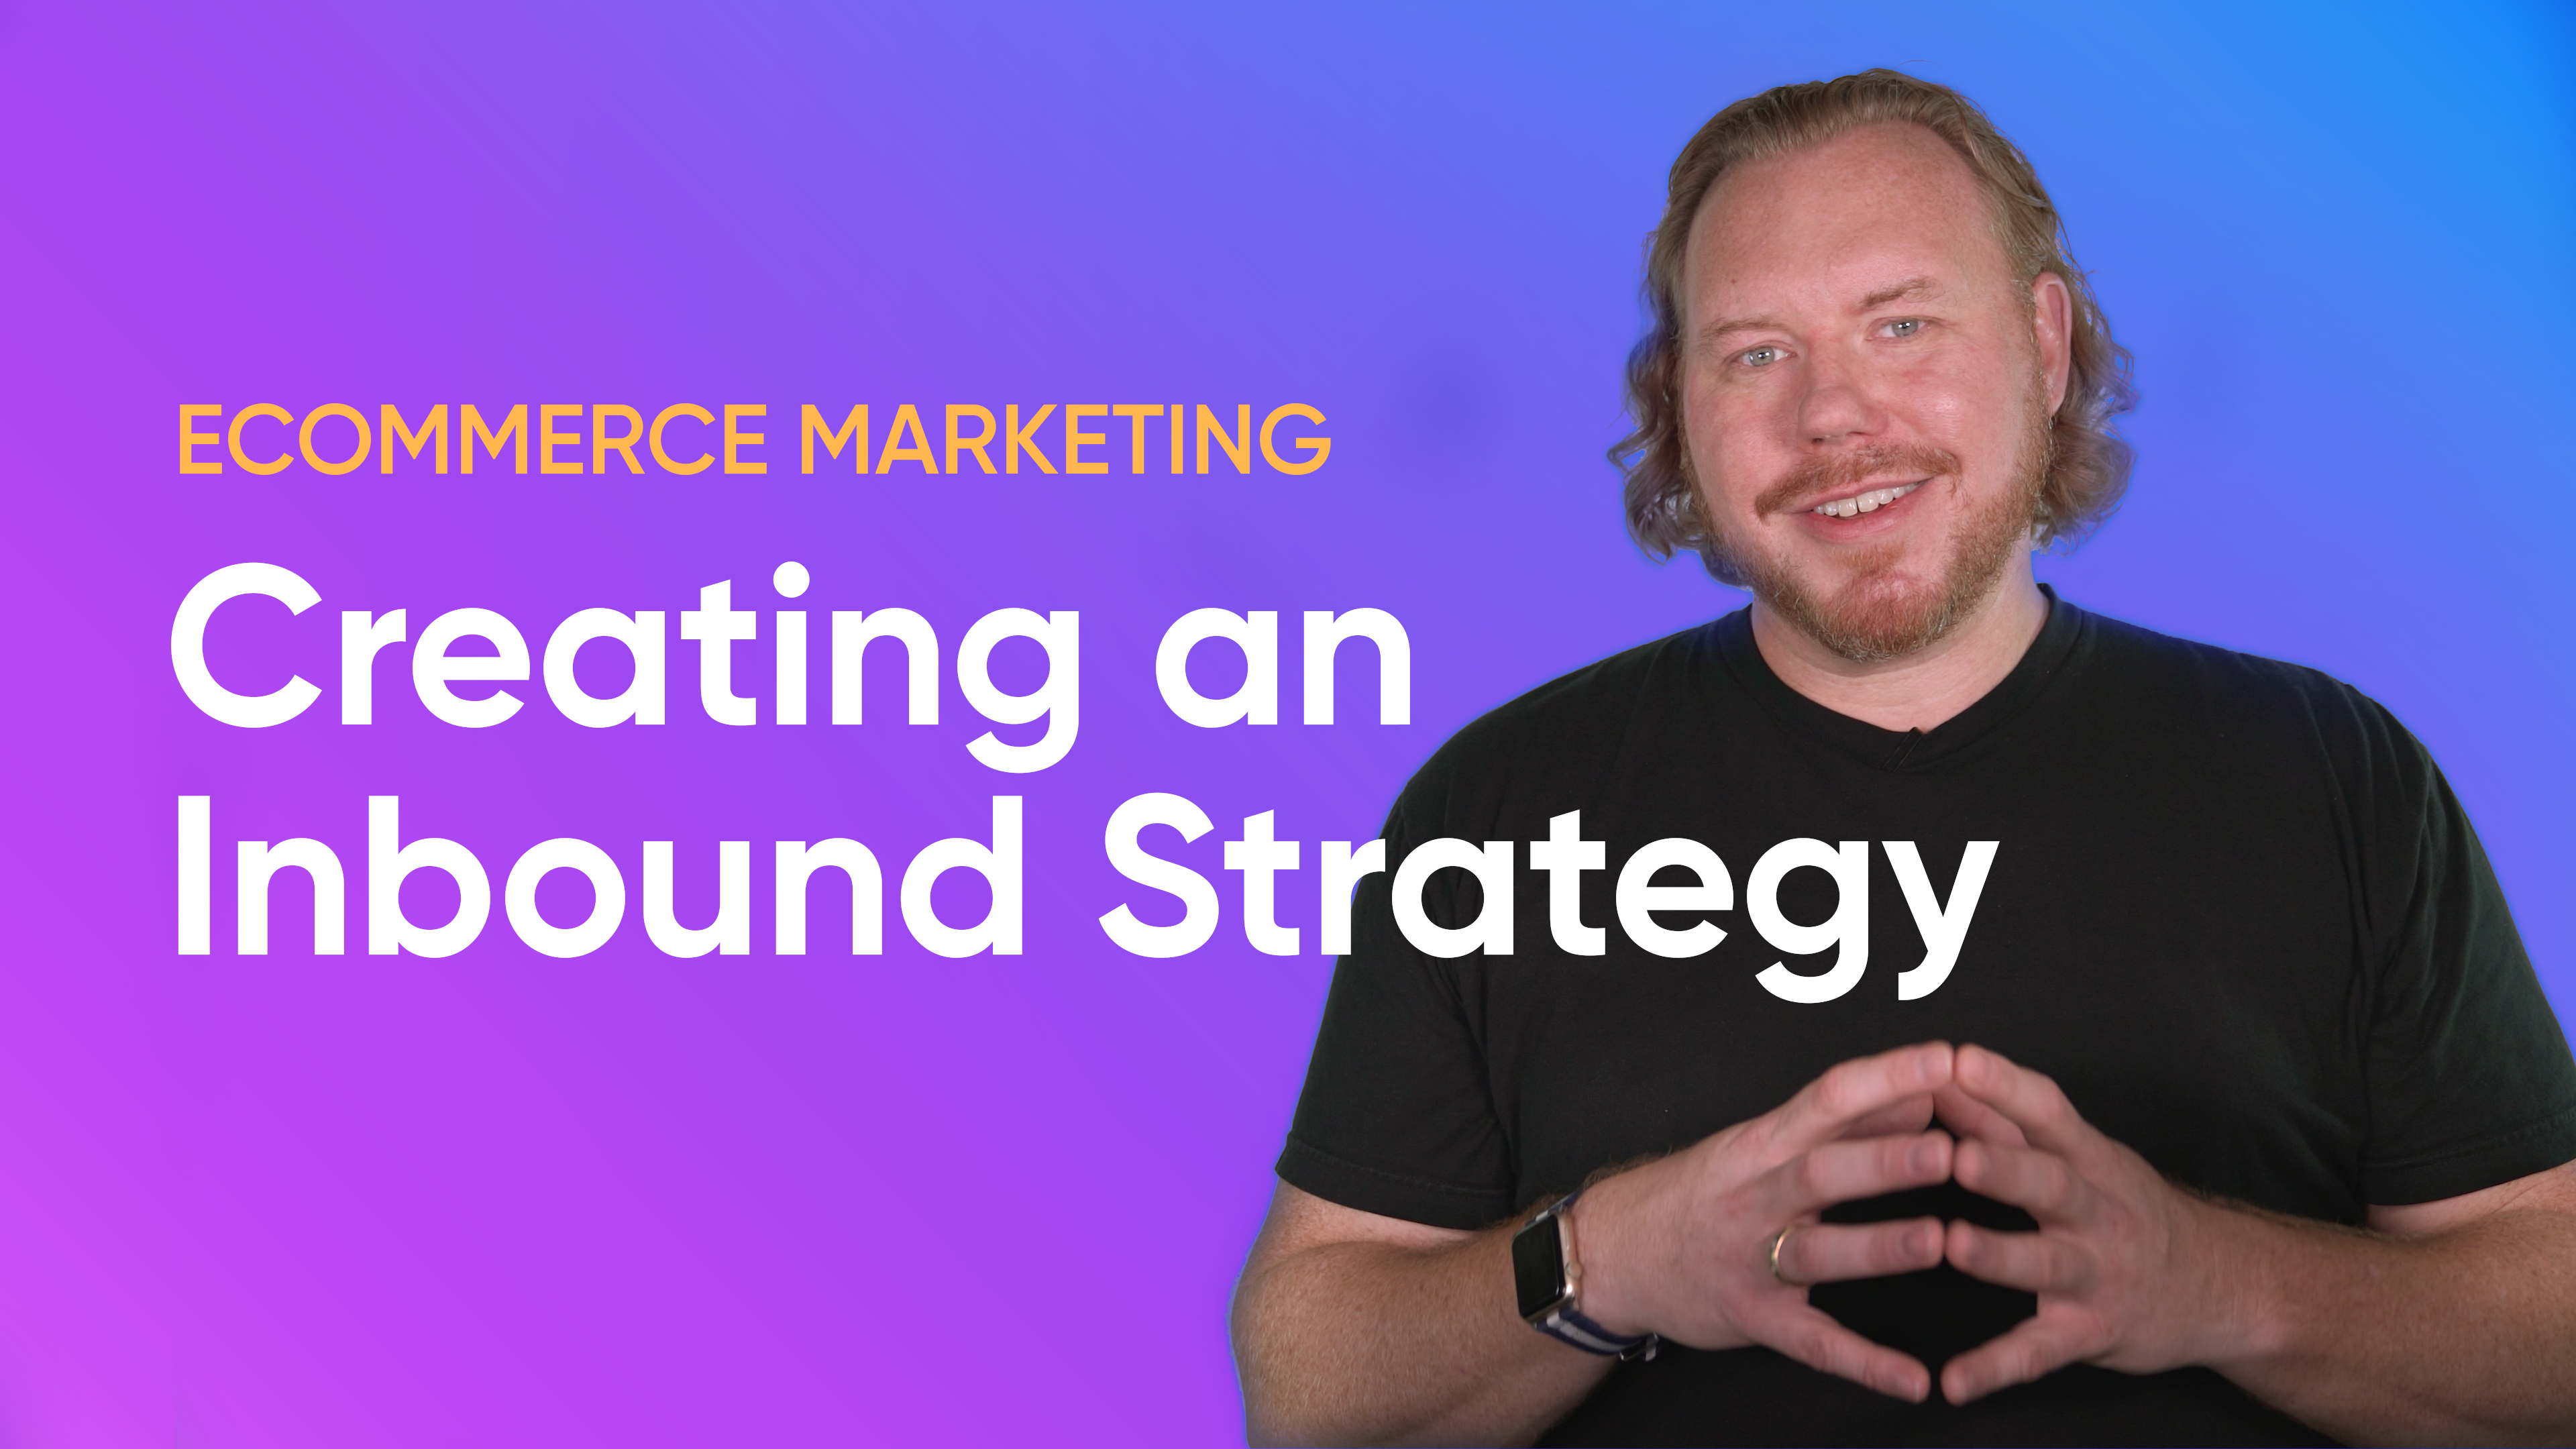 inbound-ecommerce-marketing-strategy